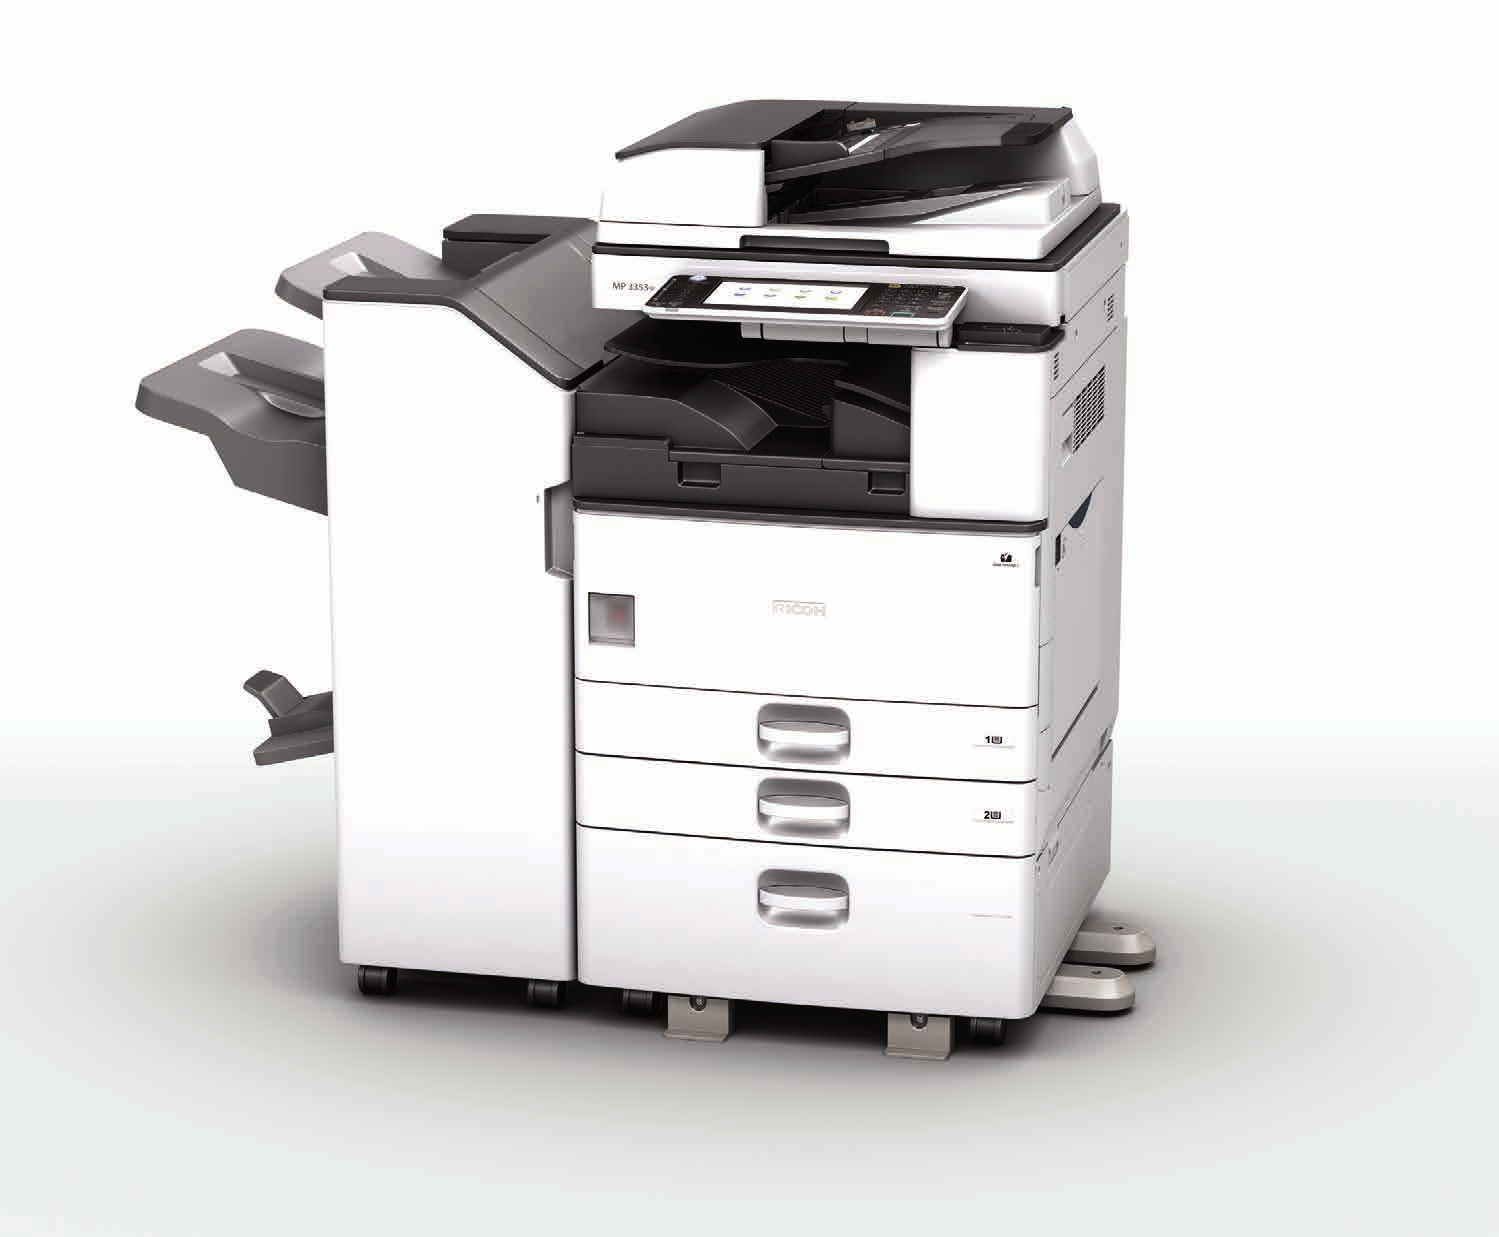 Ricoh Mp 2553sp 3053sp 3353sp Series 33 Ppm 25 30 Color Copier Aficio C2800 C3300 Service Manual Eco Friendly And Compact Black White Mfds Increasing Your Office Productivity While Simultaneously Reducing